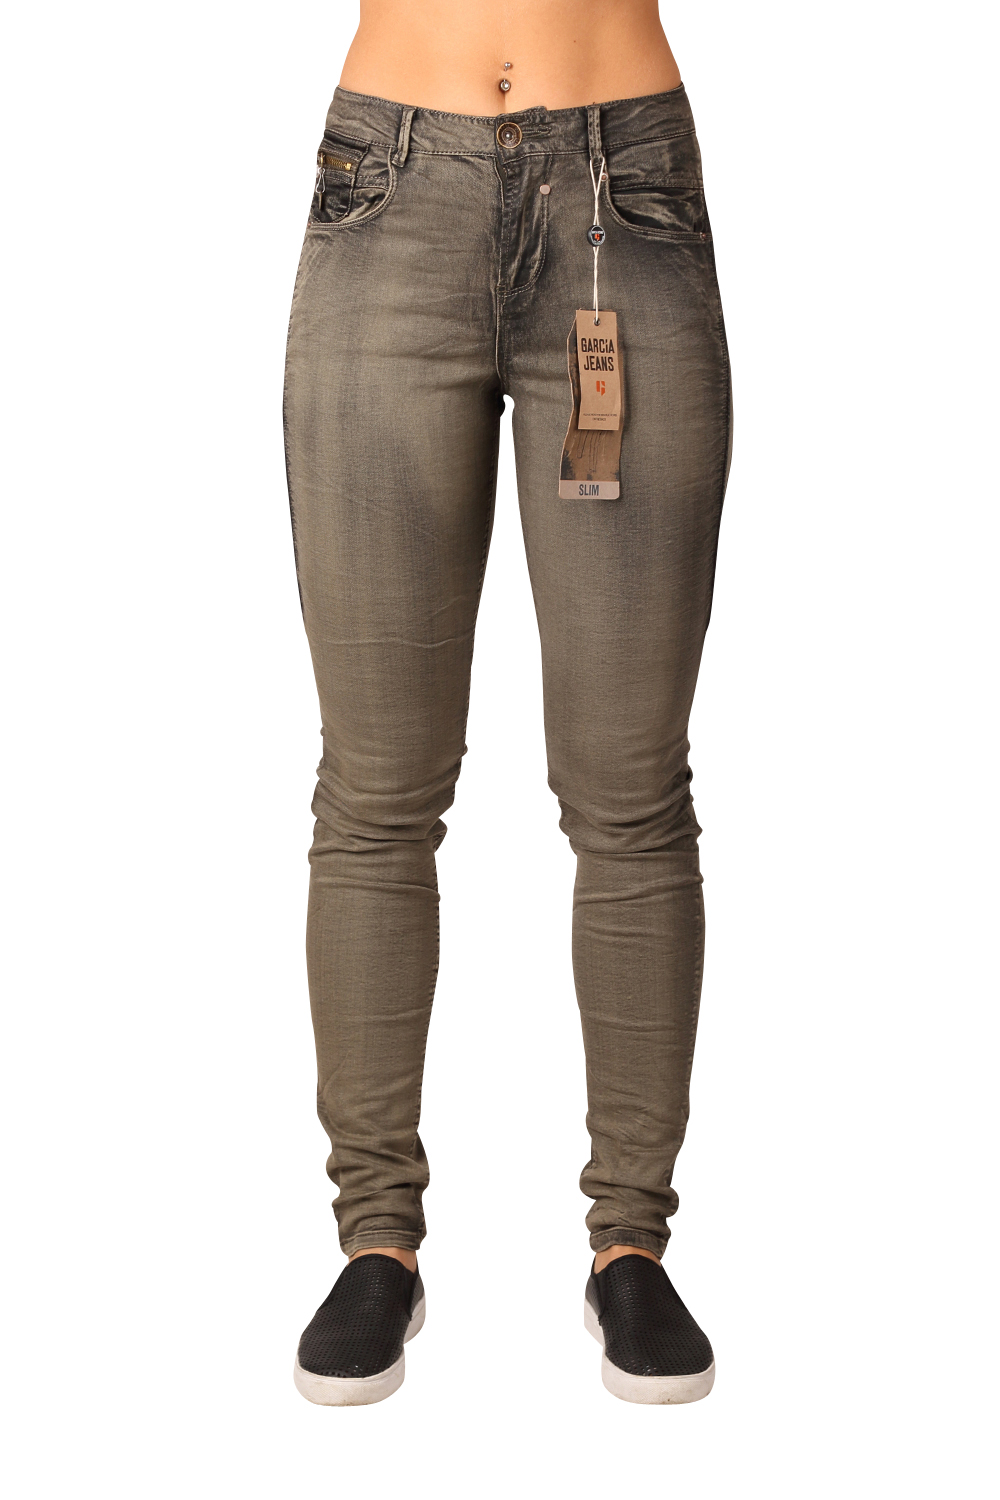 Brillant Garcia Damen Slim Jeans Celia G50113 Army Wash